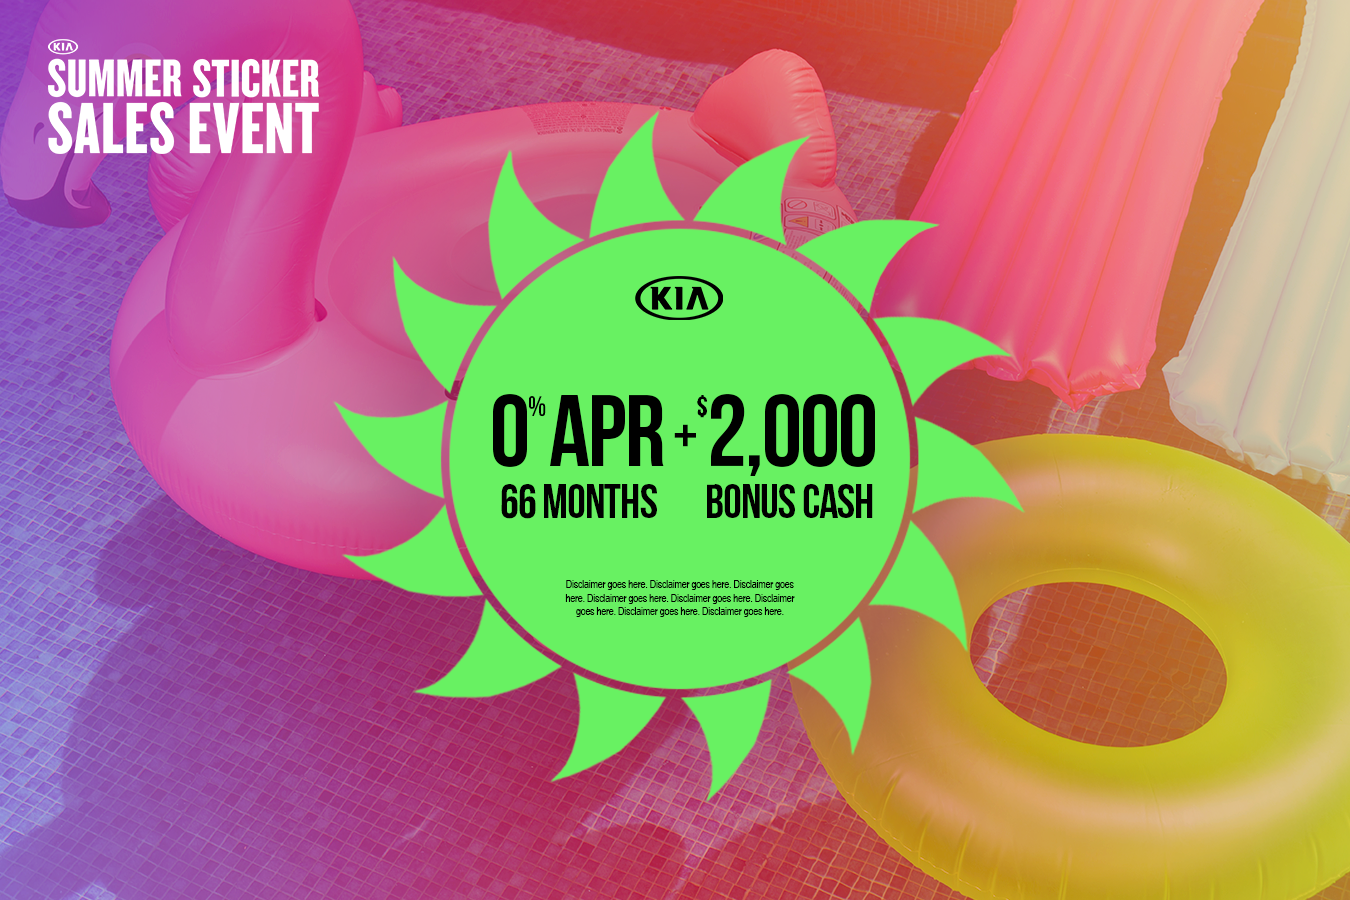 New Kia Offer for 0% APR + $2,000 Bonus Cash